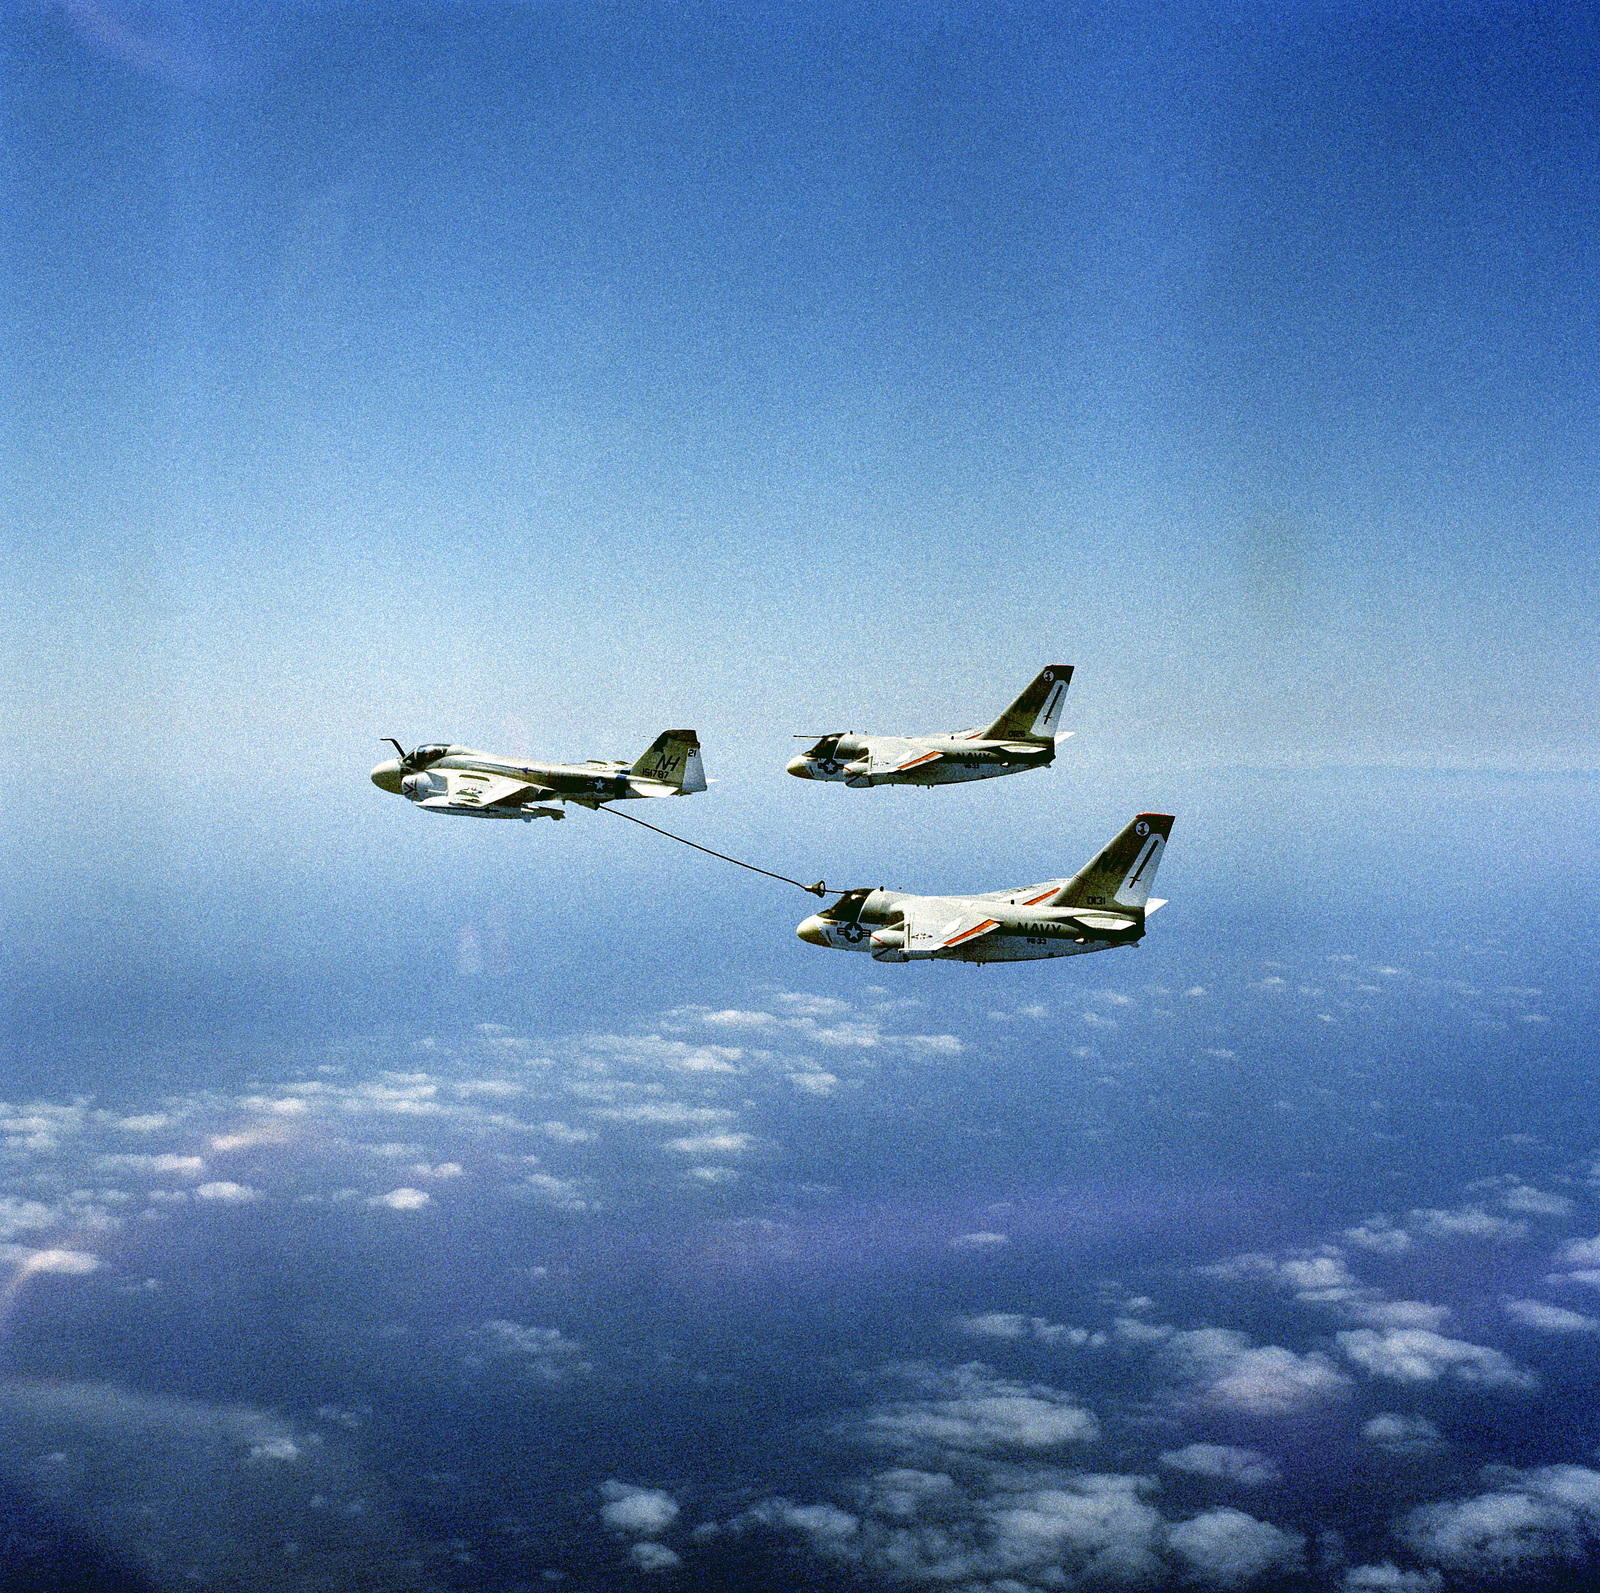 Air-to-air left side view of a KA-6D Intruder tanker aircraft from Medium Attack Squadron 52 (VA-52) (left) refueling two S-3 Viking aircraft from Air Antisubmarine Squadron (VS-33)